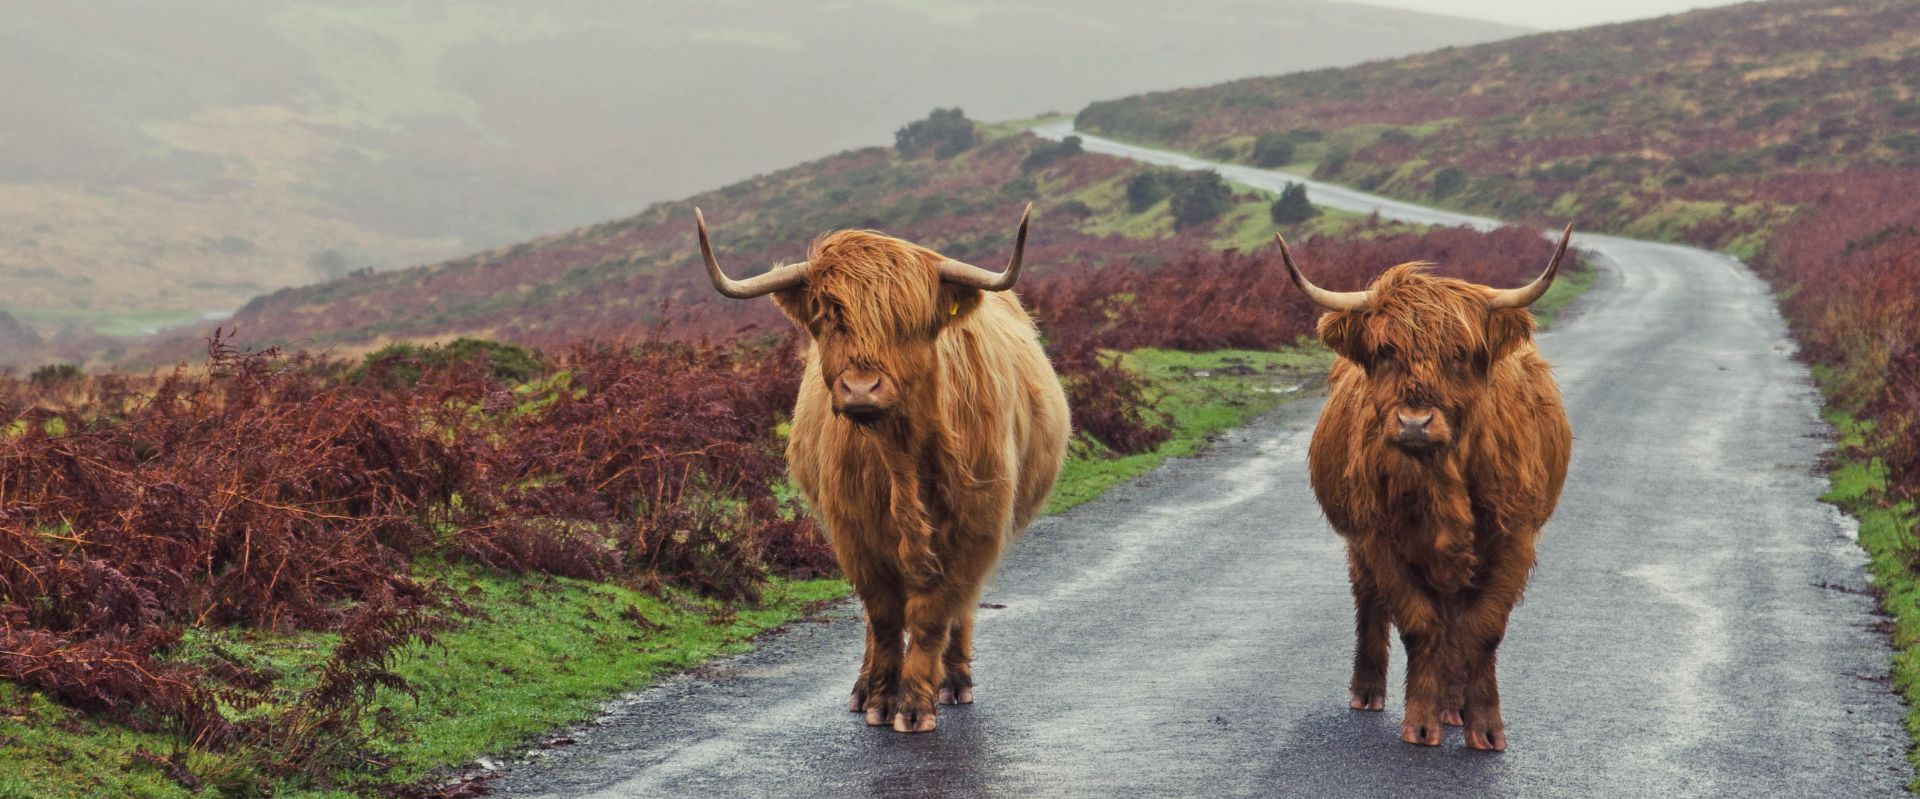 Highland Cattle on Dartmoor seen during Hound of the Baskervilles Tour